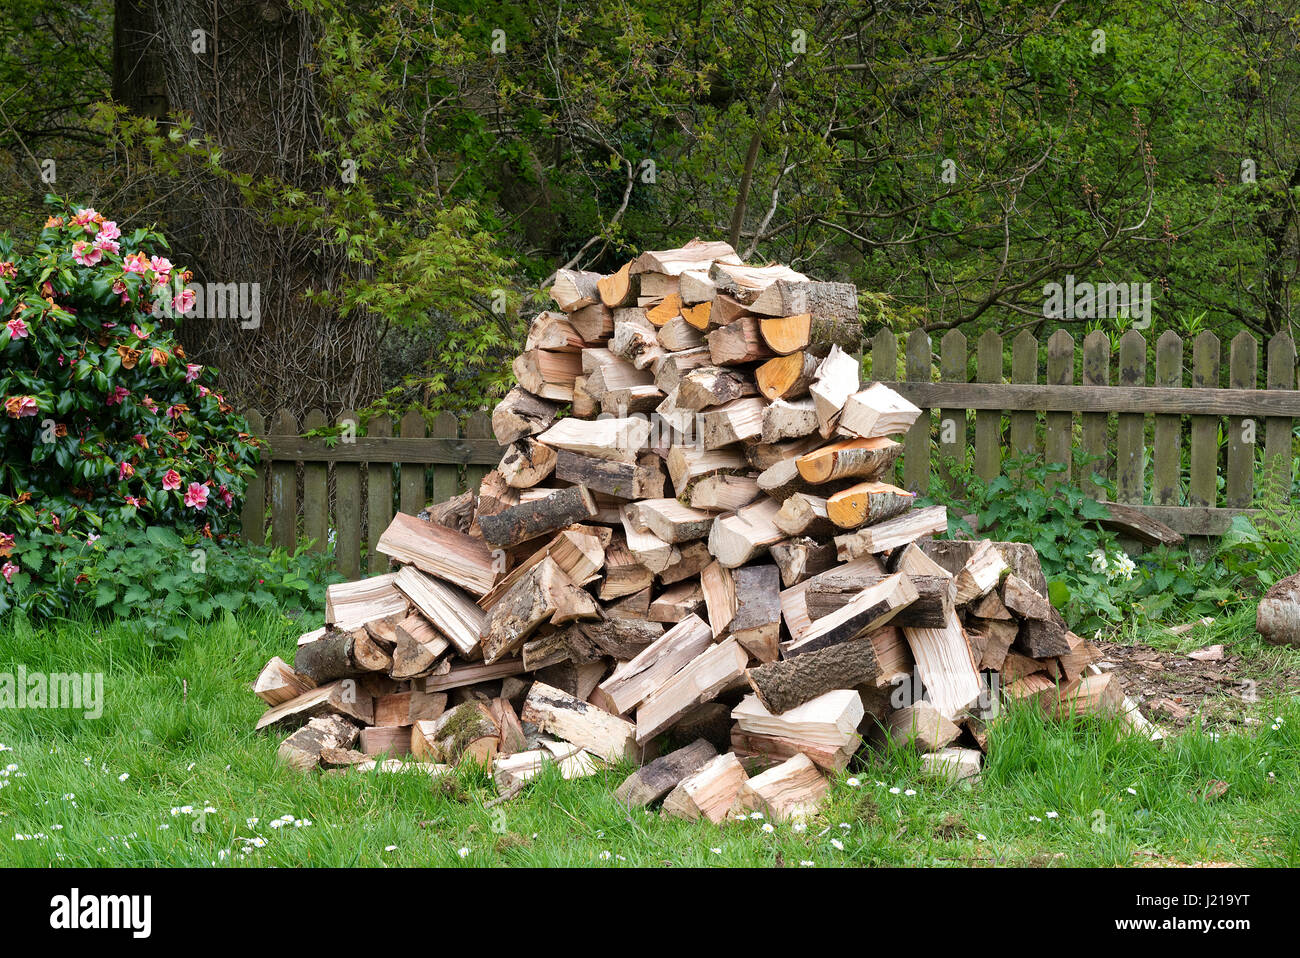 a pile of chopped logs for firewood - Stock Image